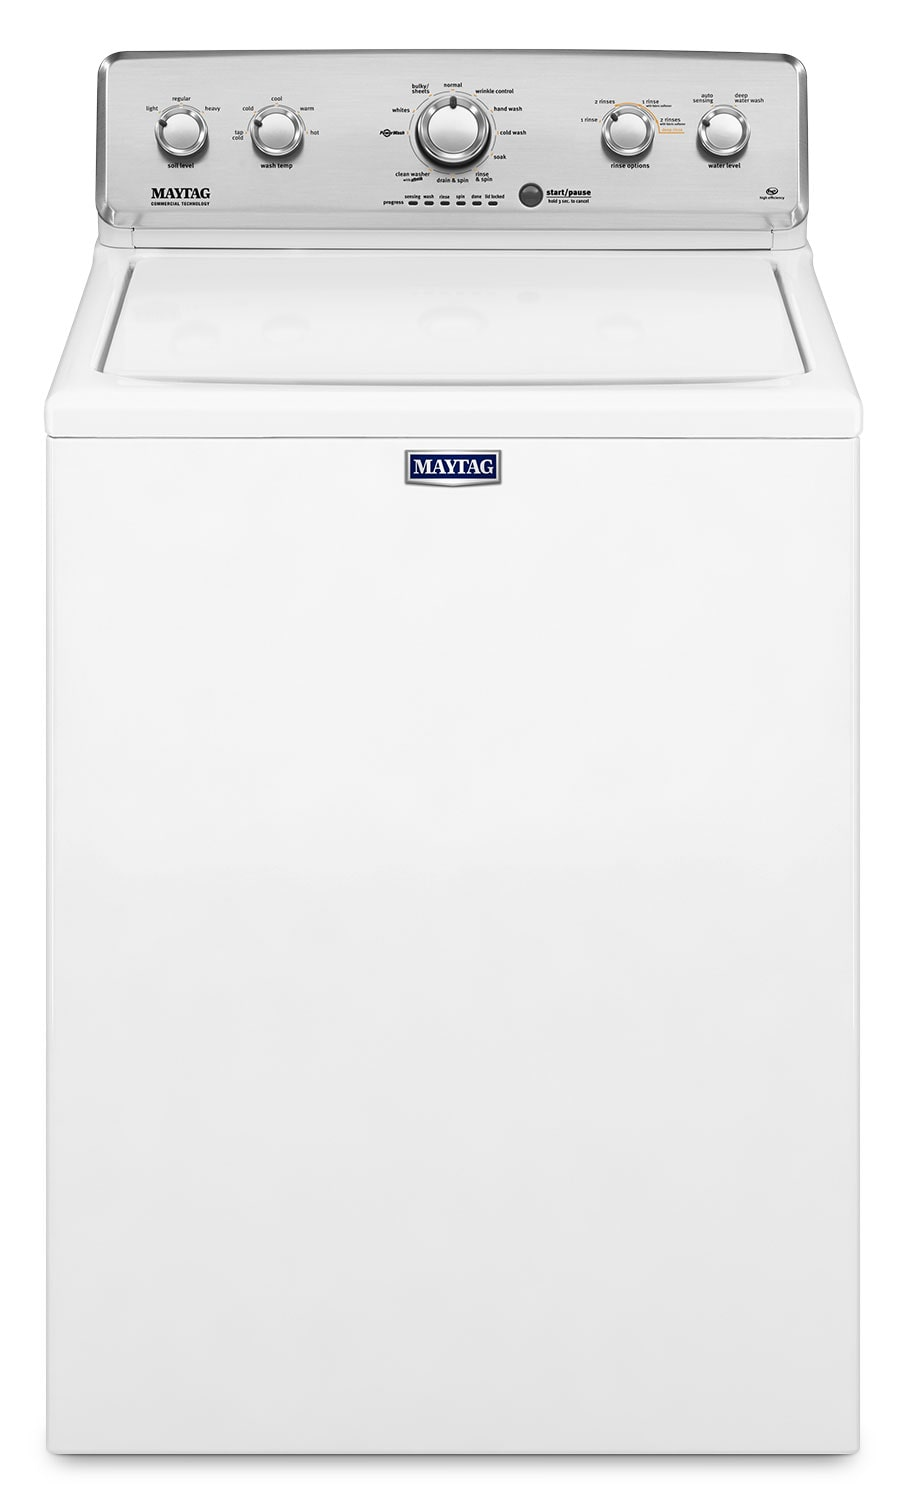 Maytag 4.9 Cu. Ft. Top-Load Washer – MVWC565FW